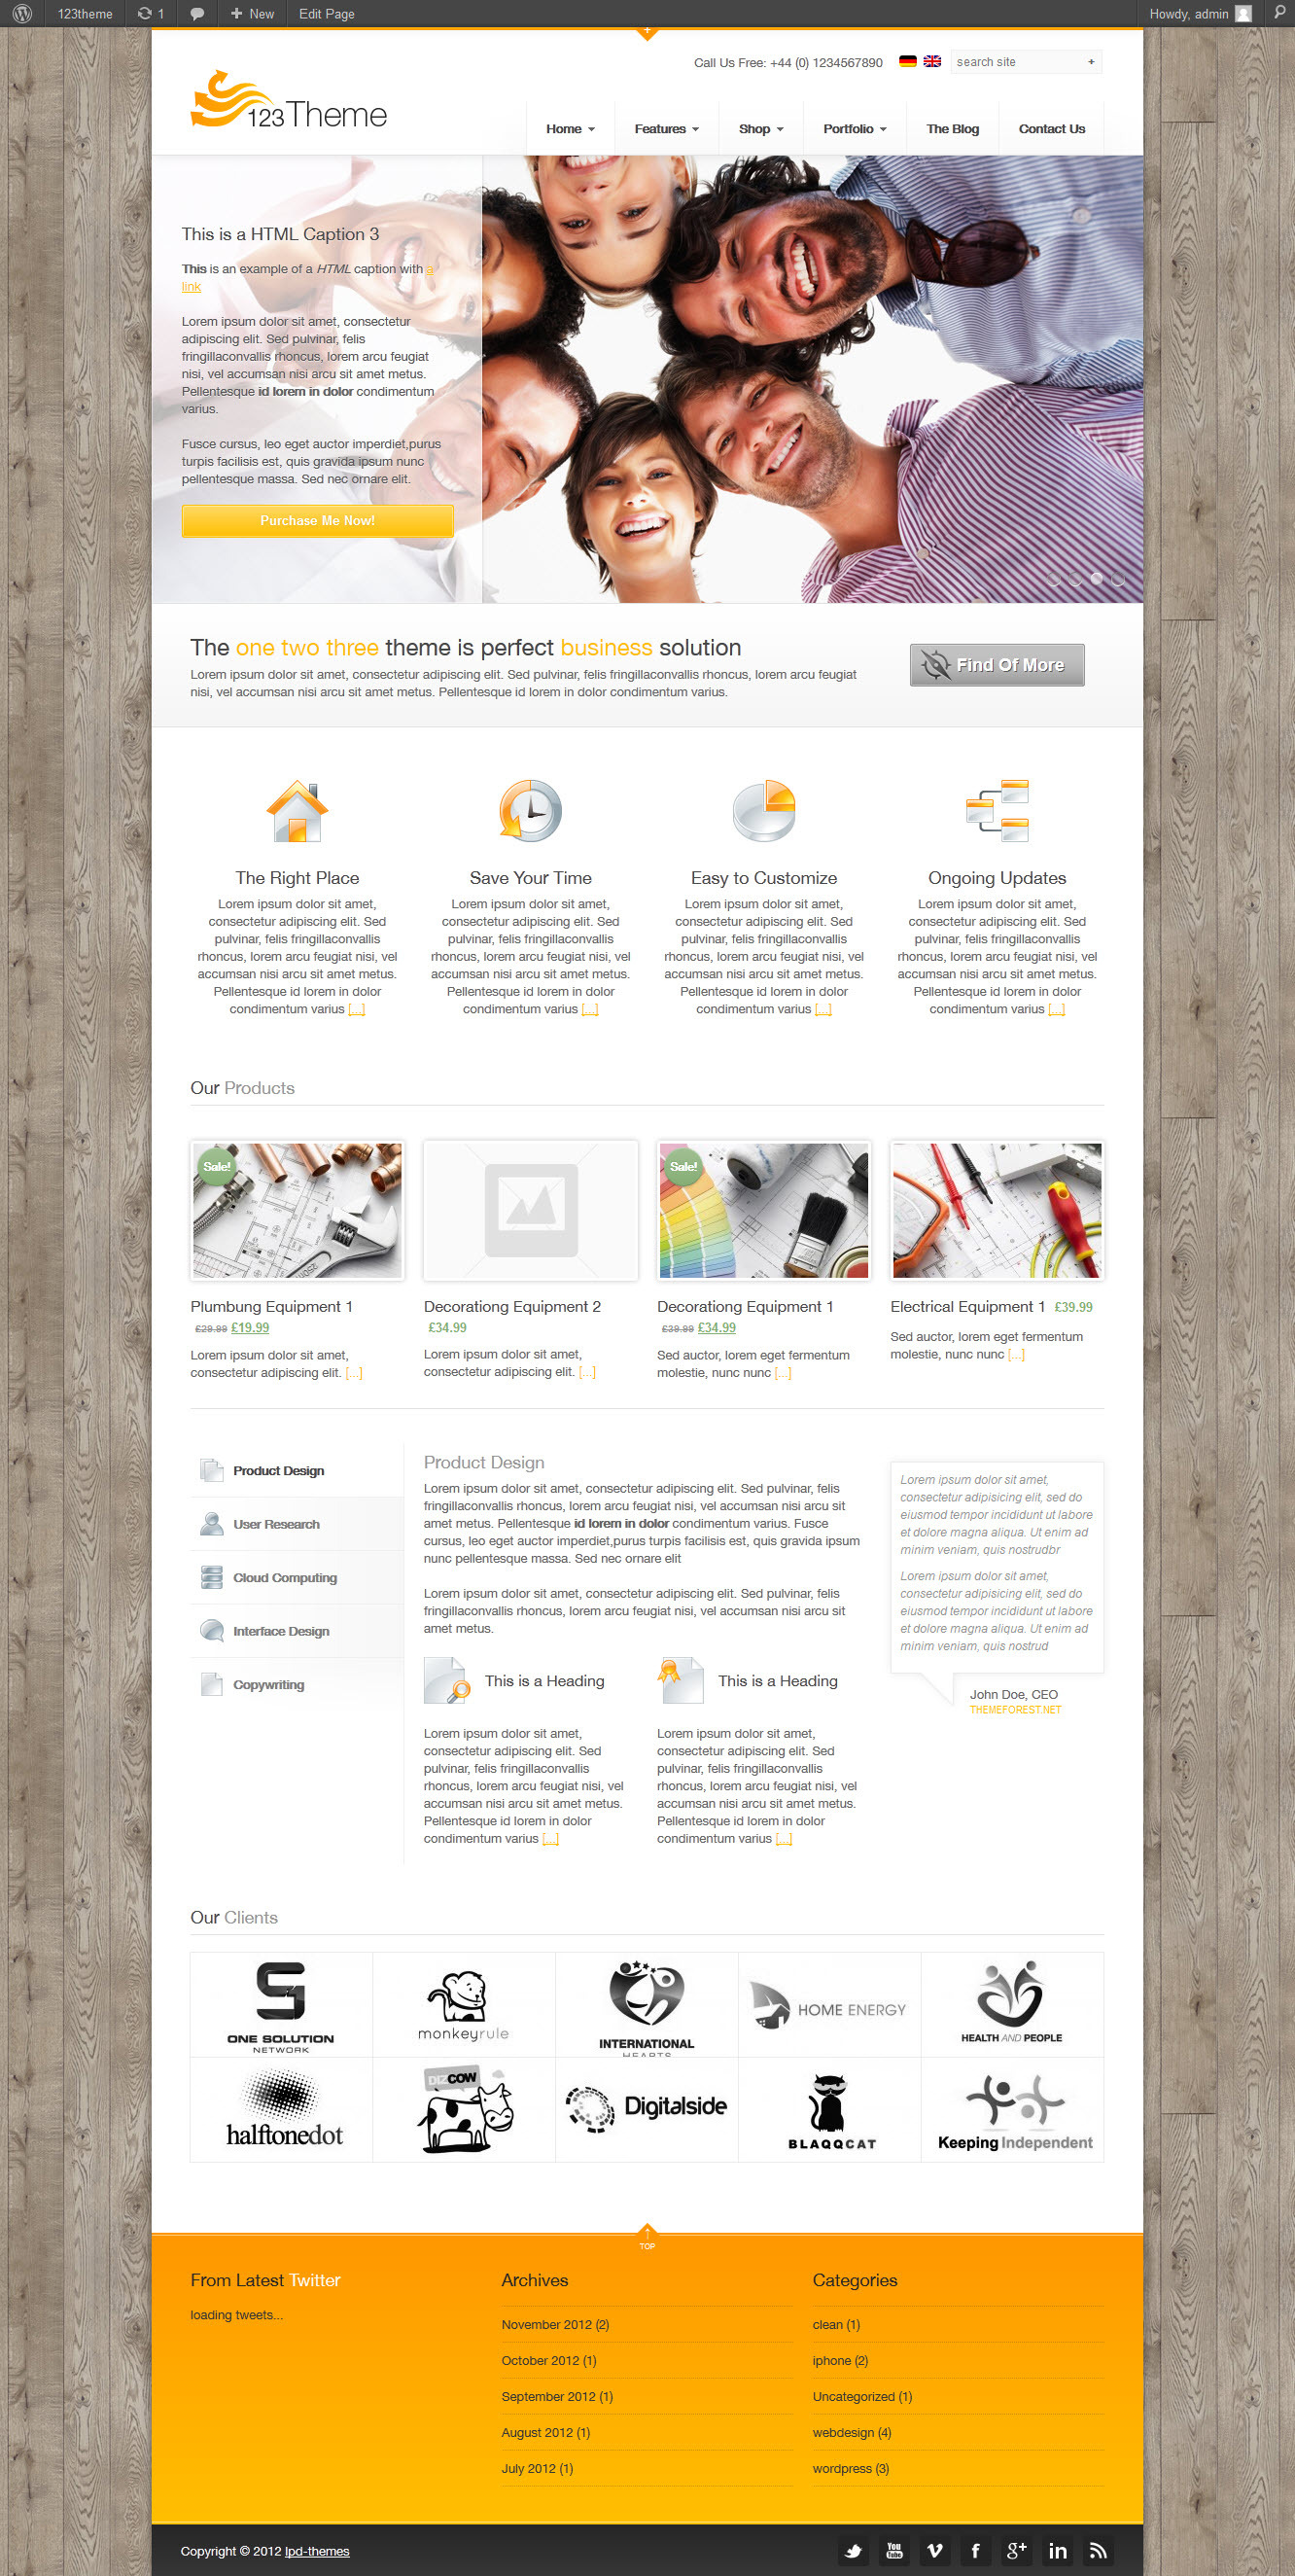 123Theme Business & eCommerce Wordpress Theme - 03_front_page